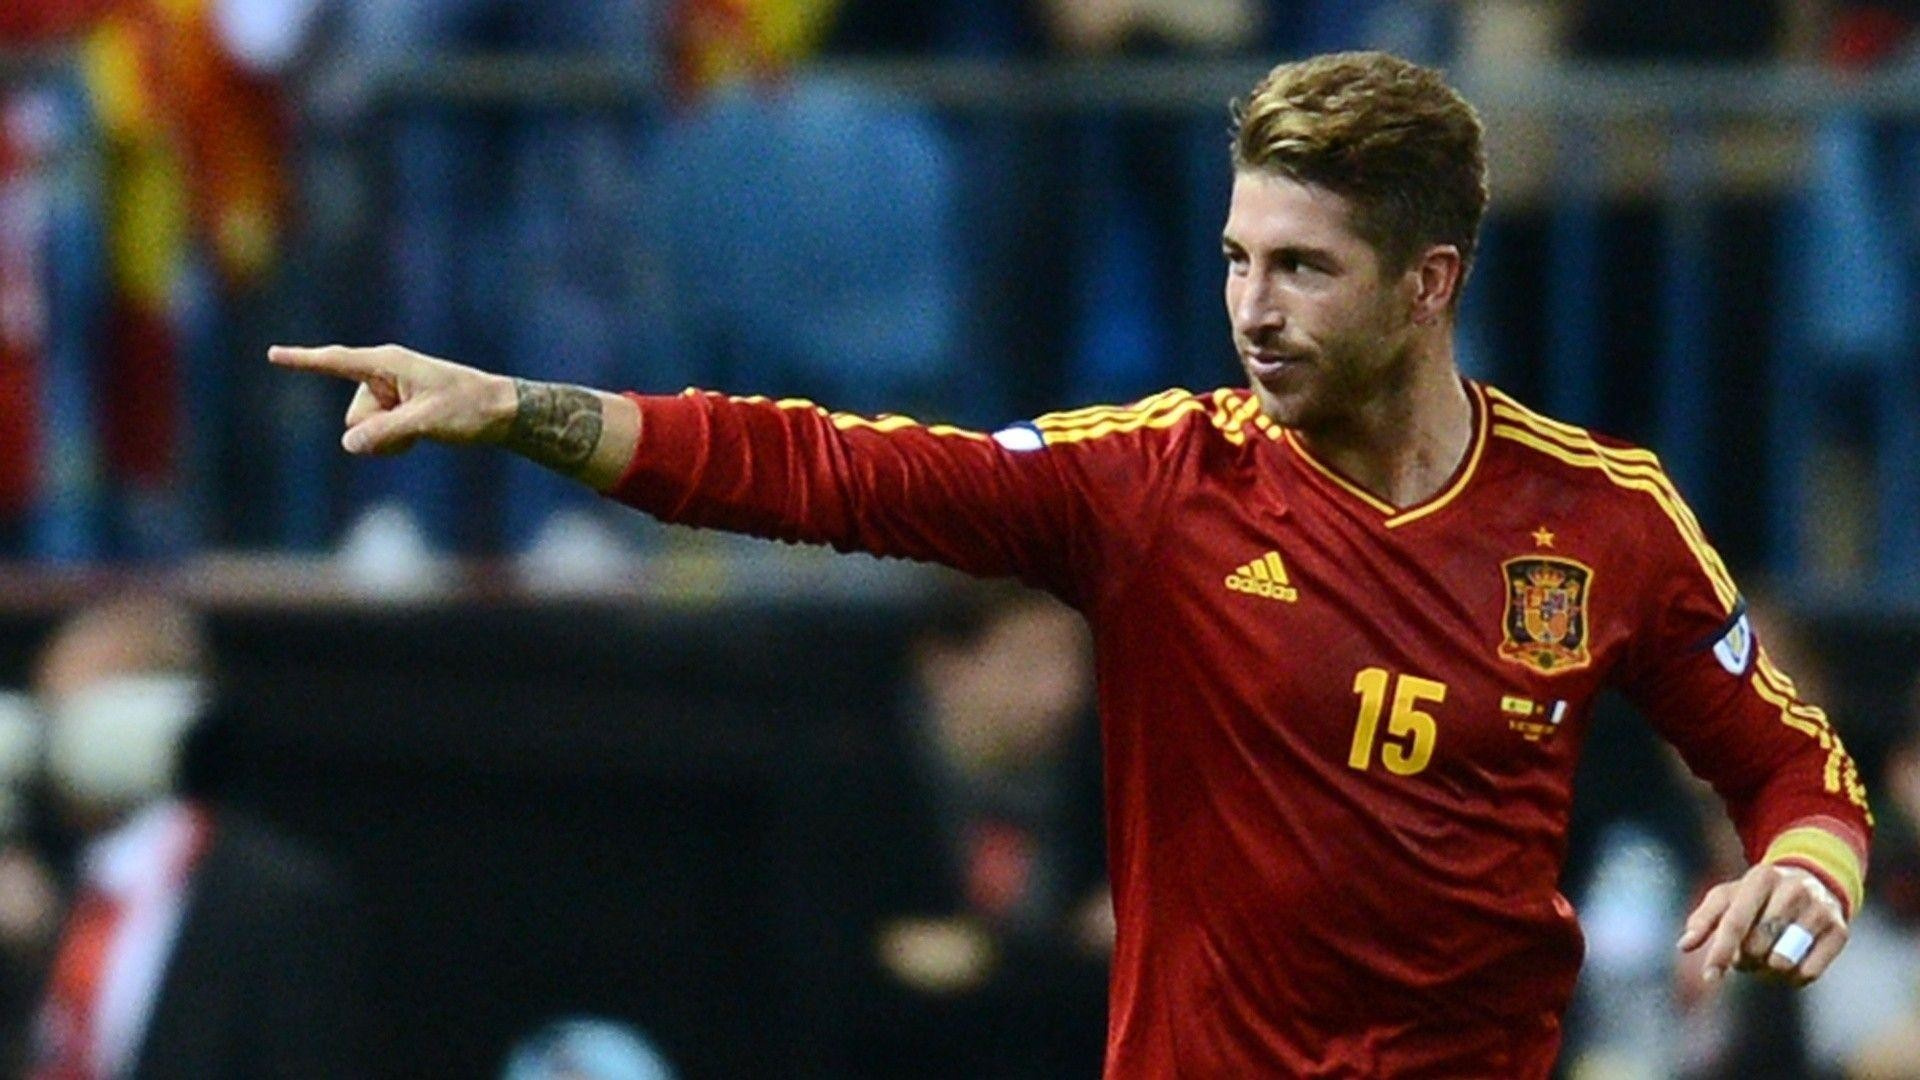 1920x1080 Sergio Ramos Wallpapers - Wallpaper Cave